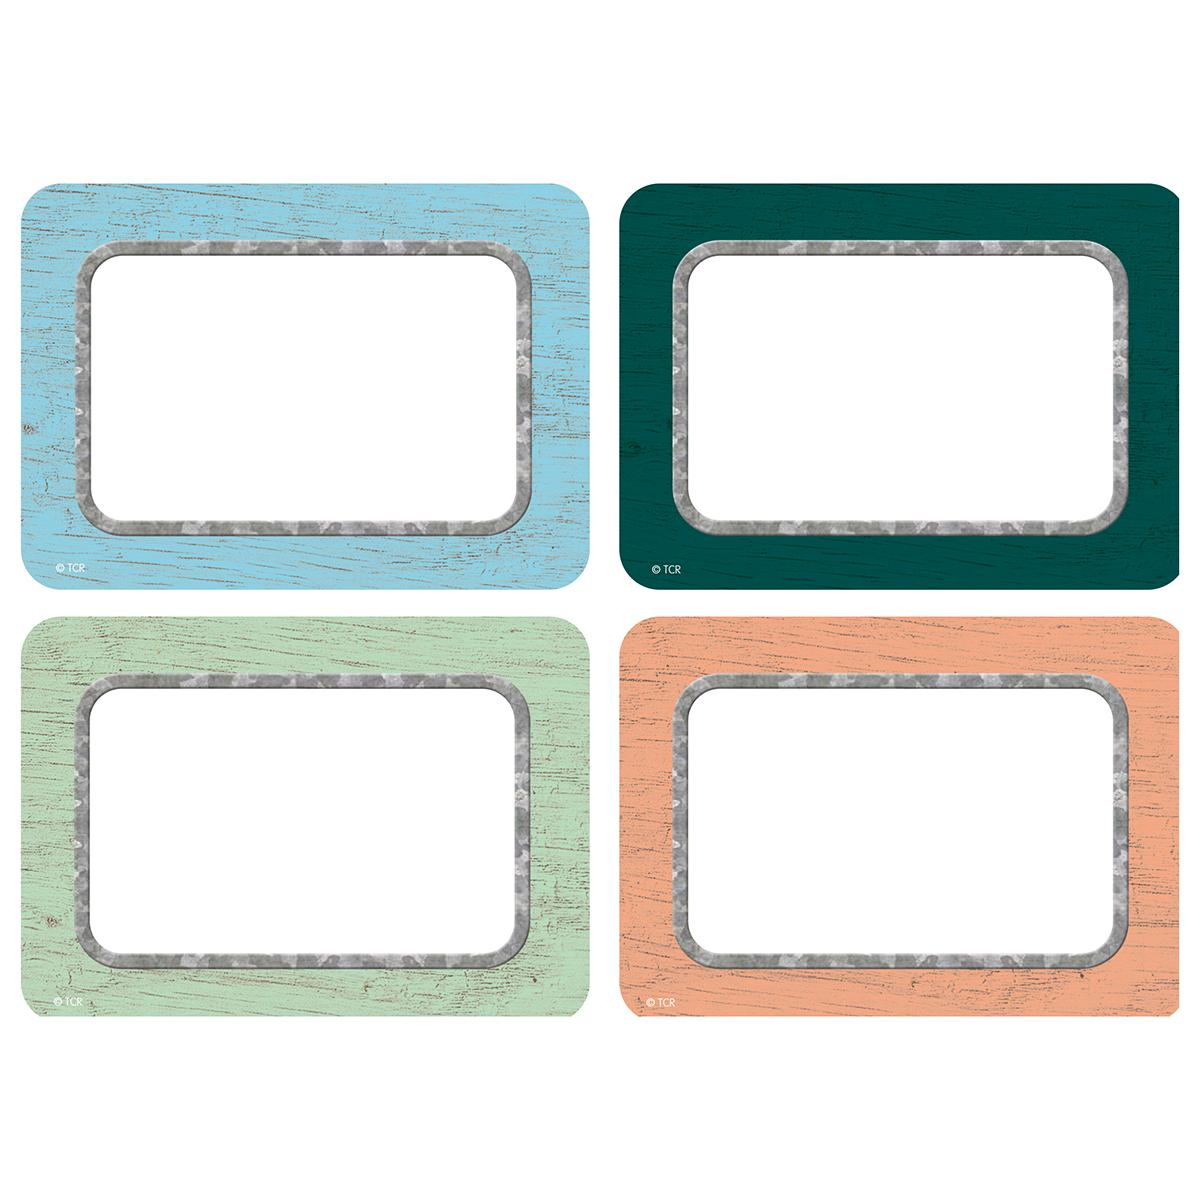 Painted Wood Name Tags/Labels Multi-Pack